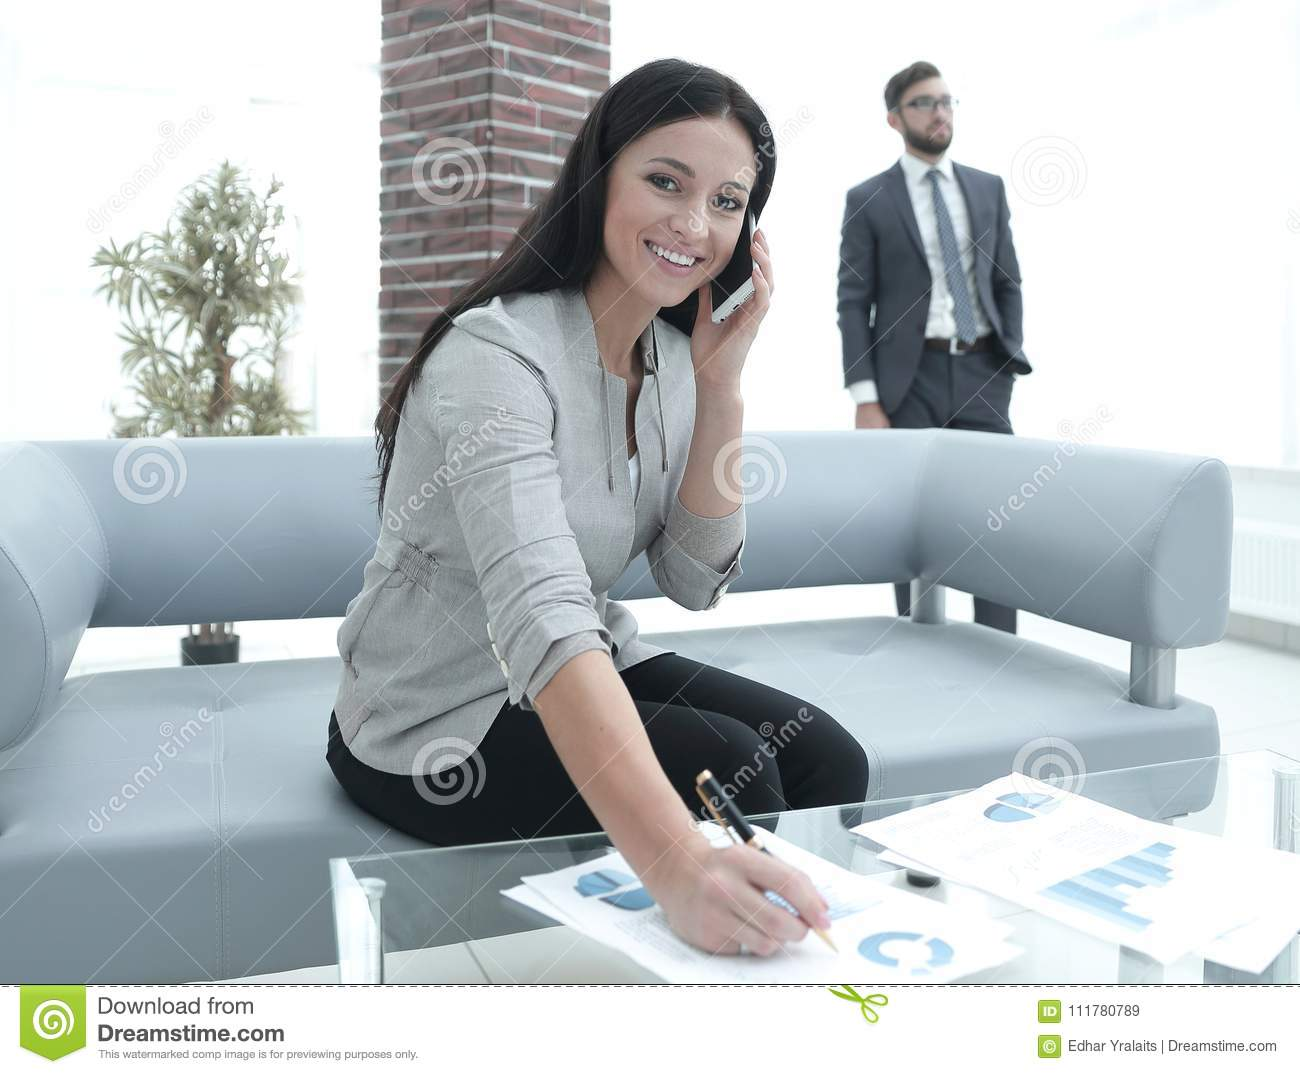 Woman assistant at the workplace in the office